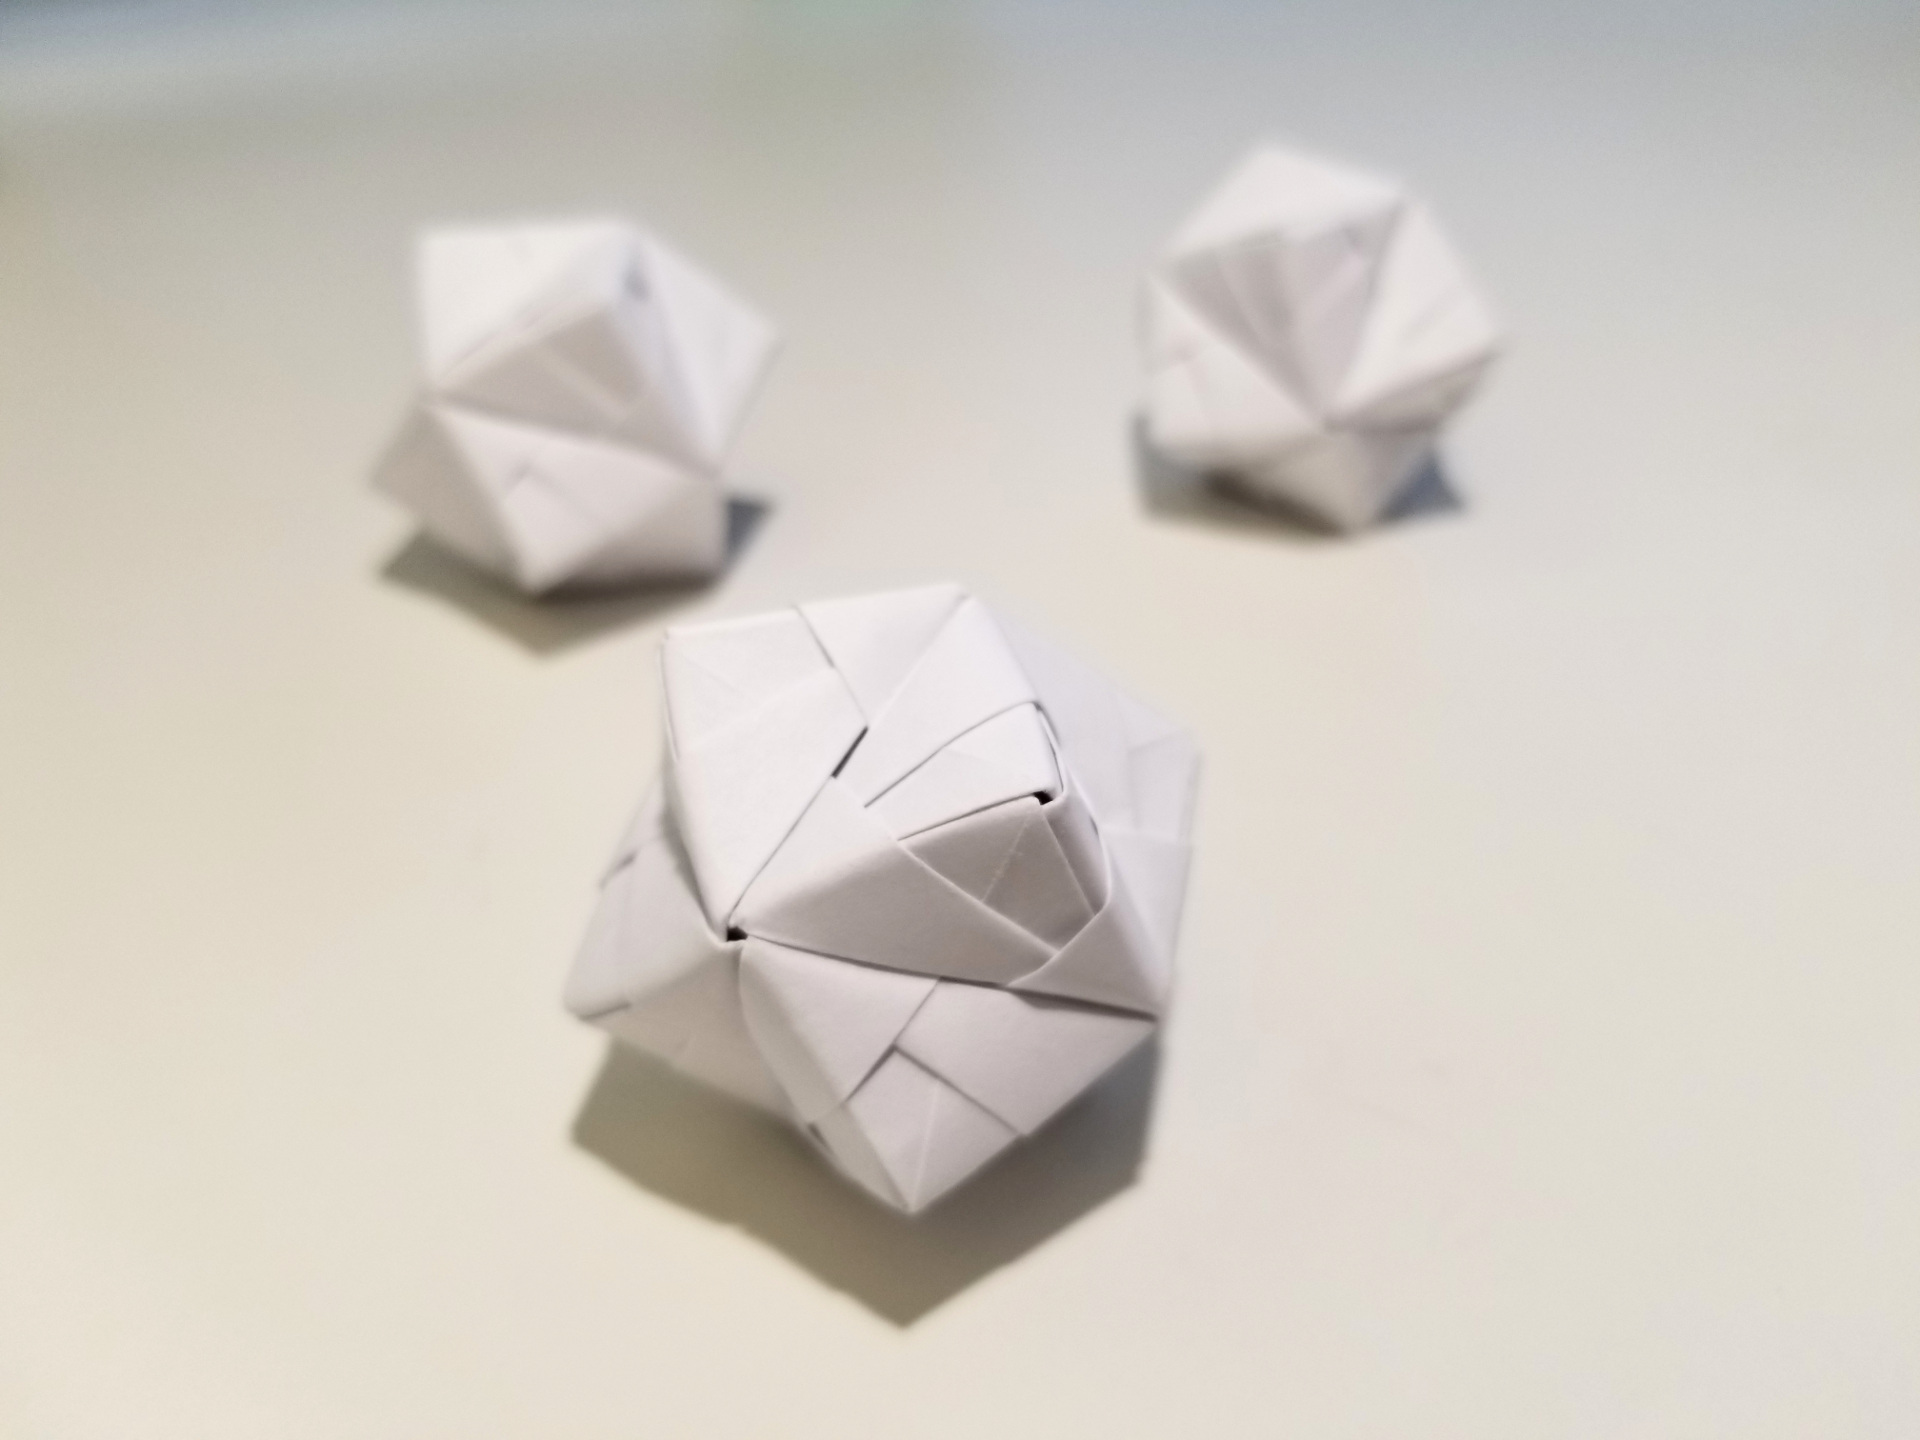 Modular Origami Dodecahedron With Windows - Instructables | 1440x1920